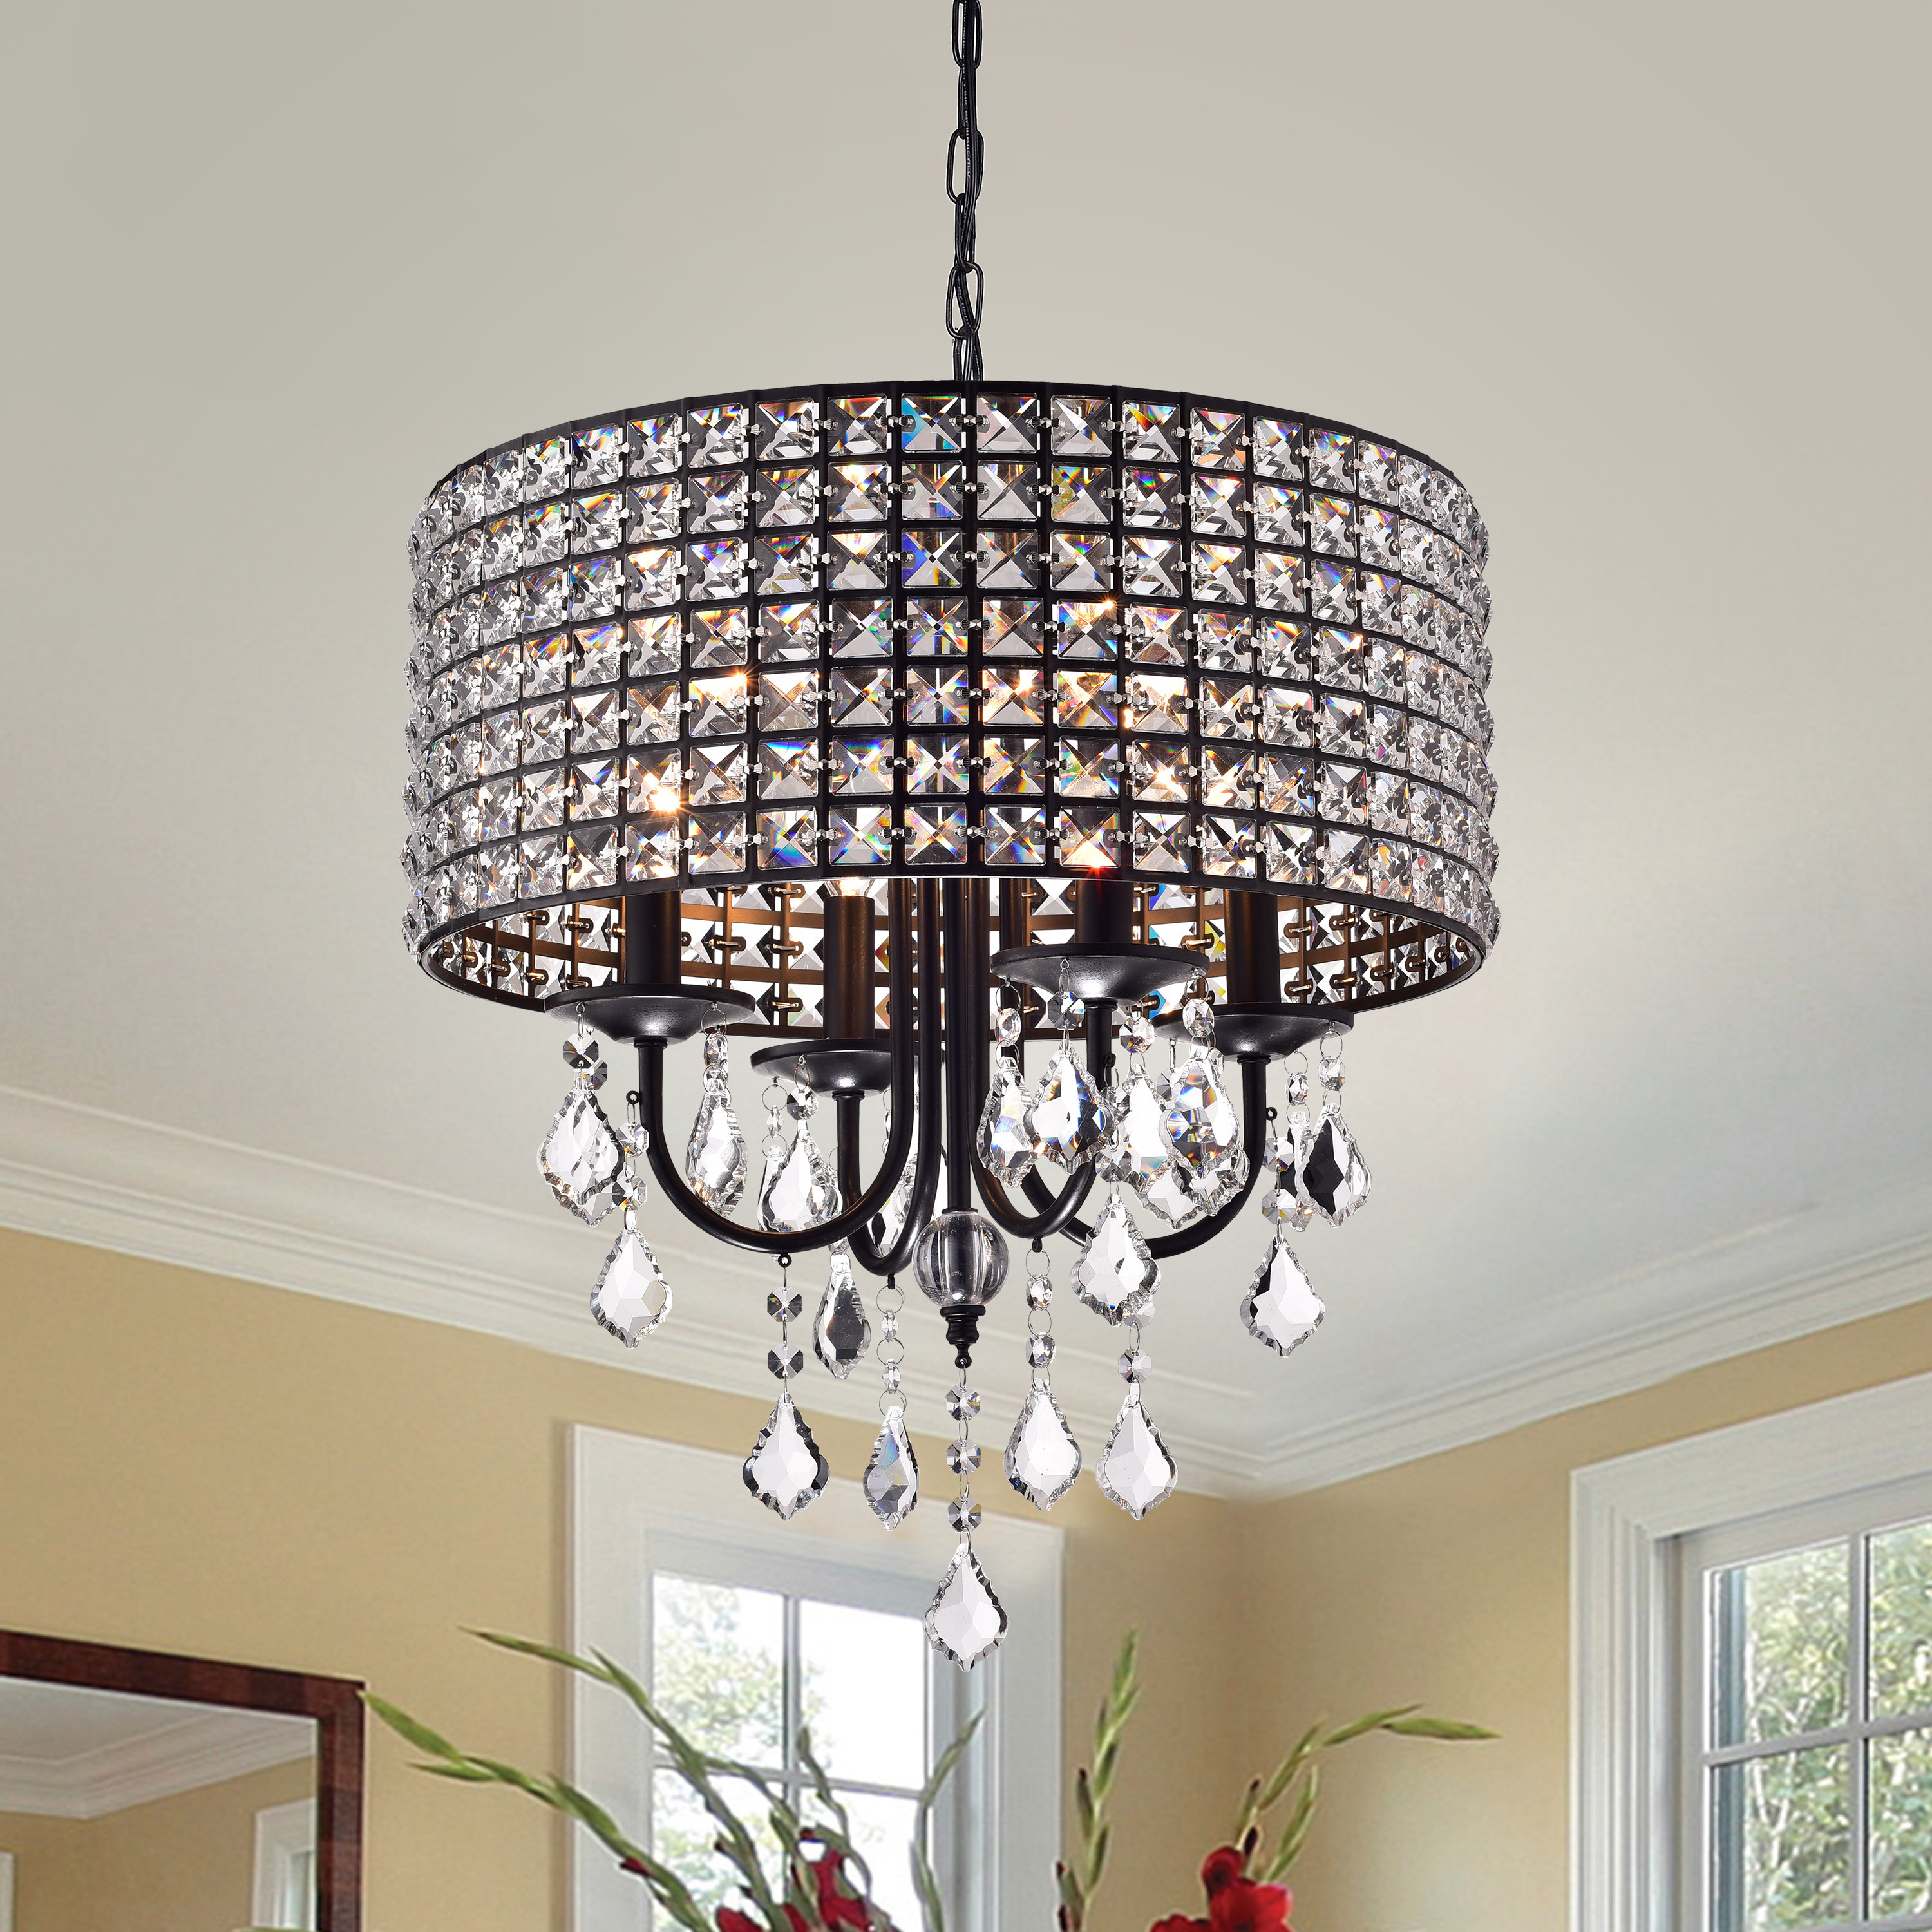 Albano 4 Light Crystal Chandelier Within Mckamey 4 Light Crystal Chandeliers (View 5 of 30)